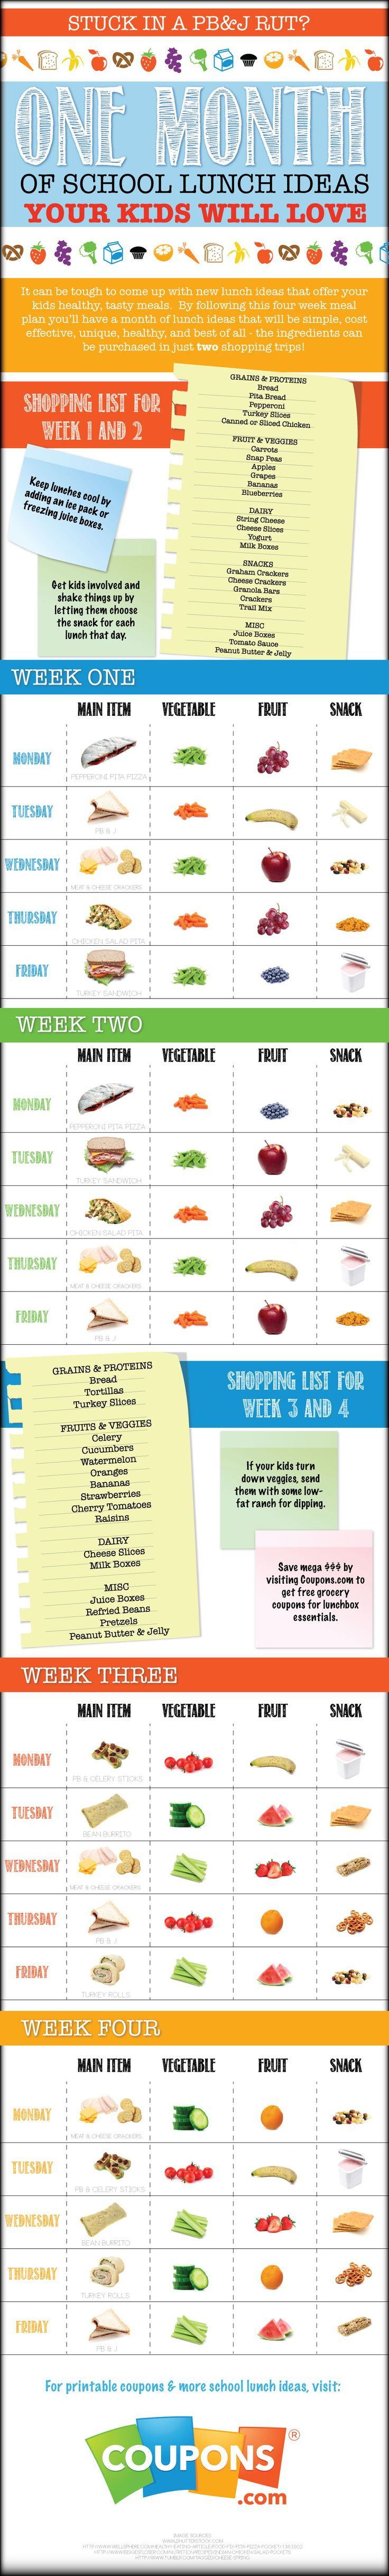 119 best school days images on pinterest school days teacher one month of easy school lunch ideas infographic fandeluxe Image collections